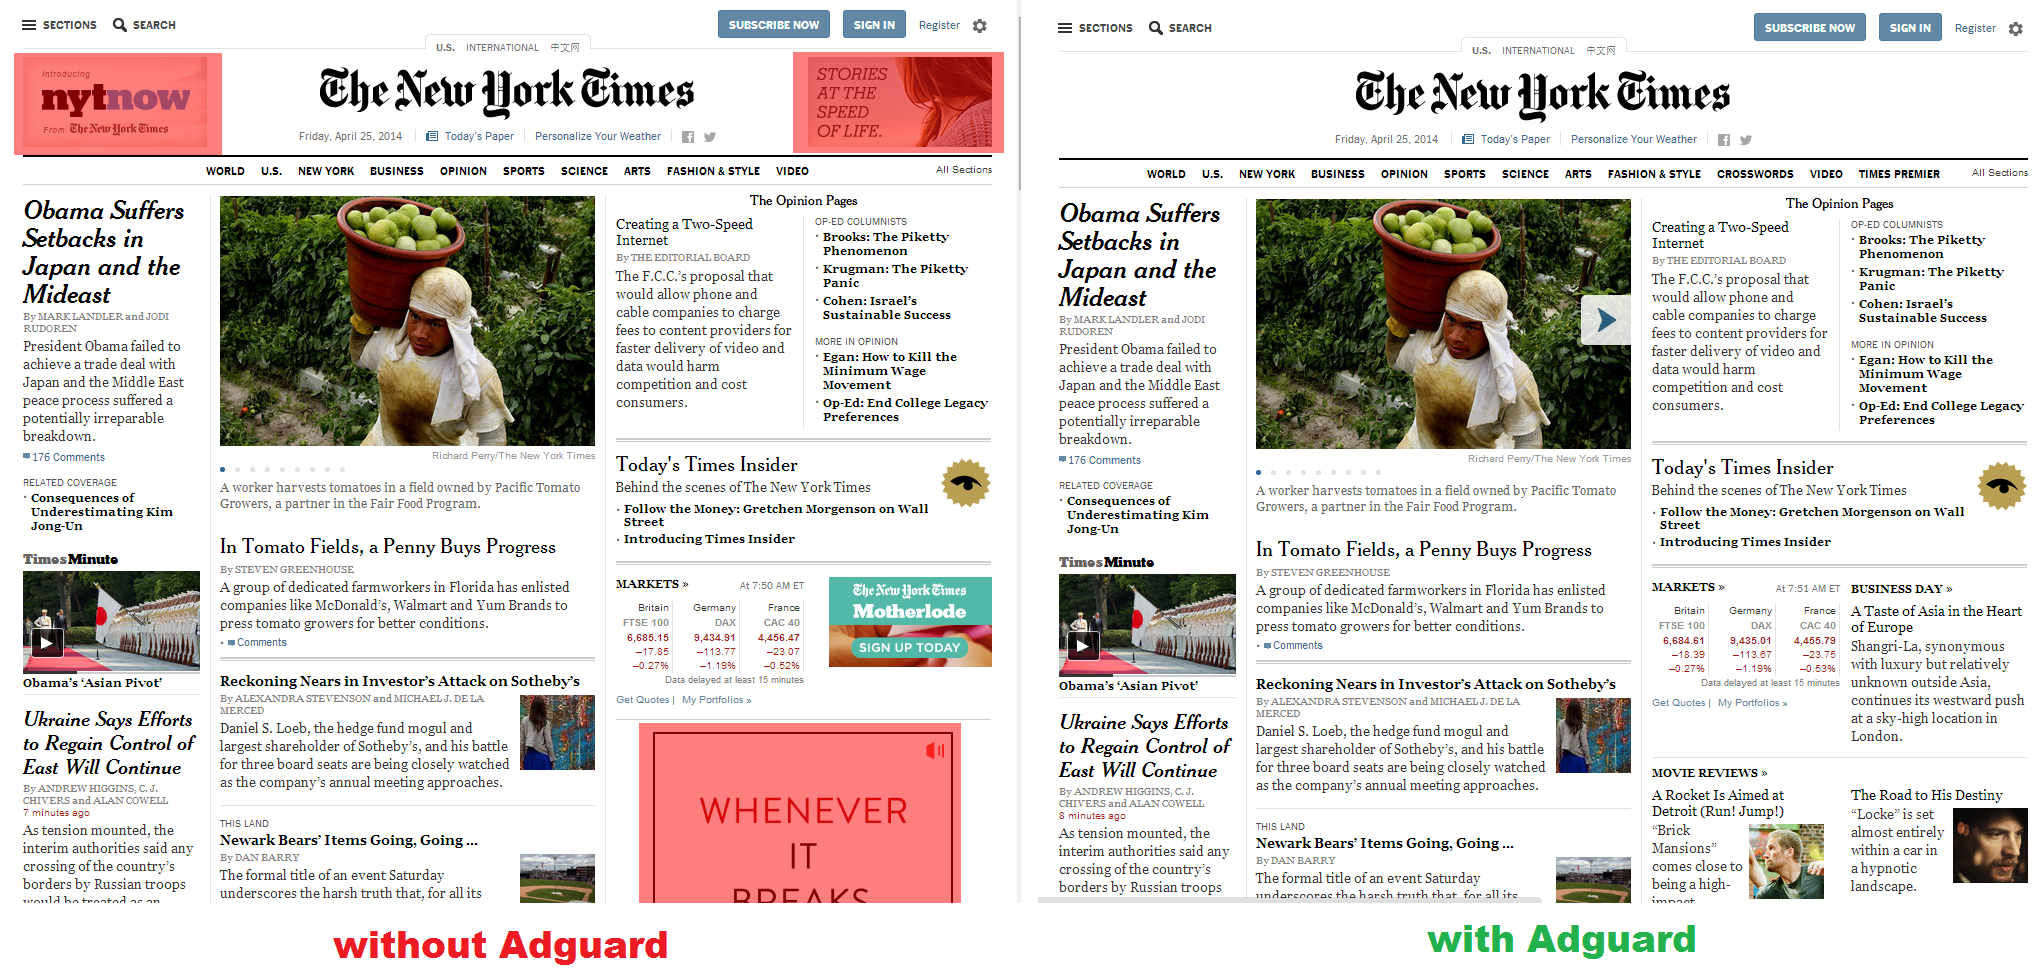 Block ads in New York Times